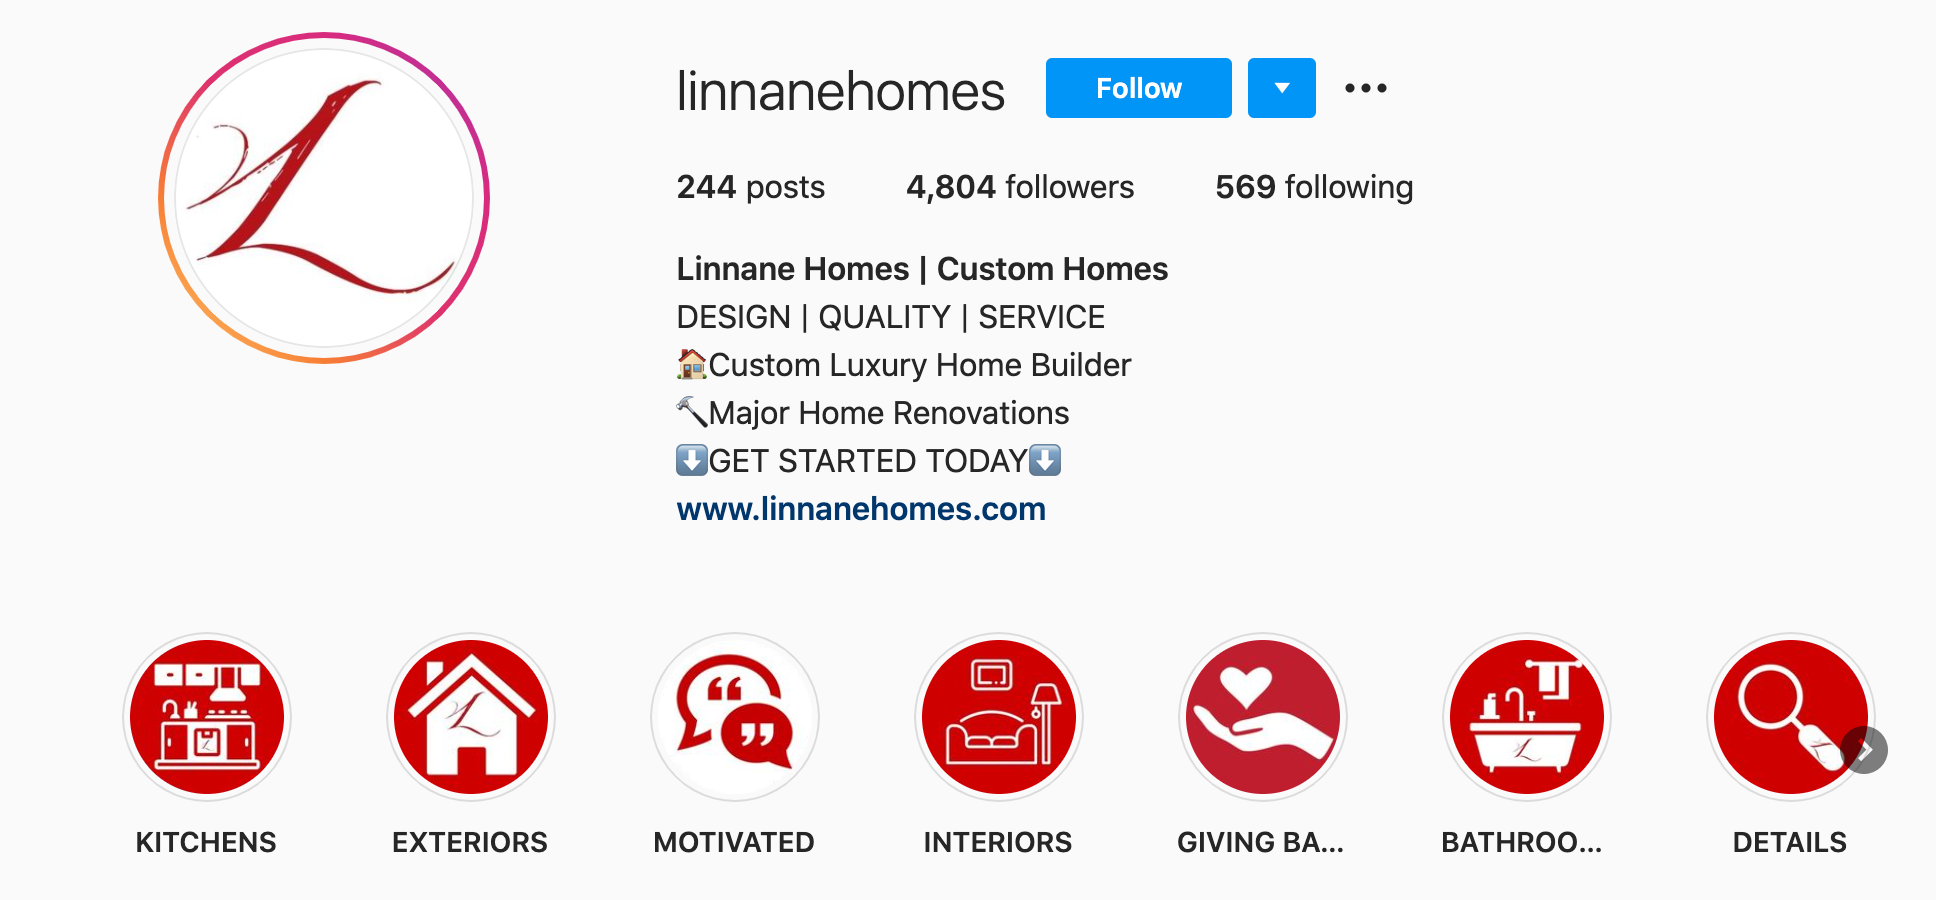 linannehomes-instagram-homes